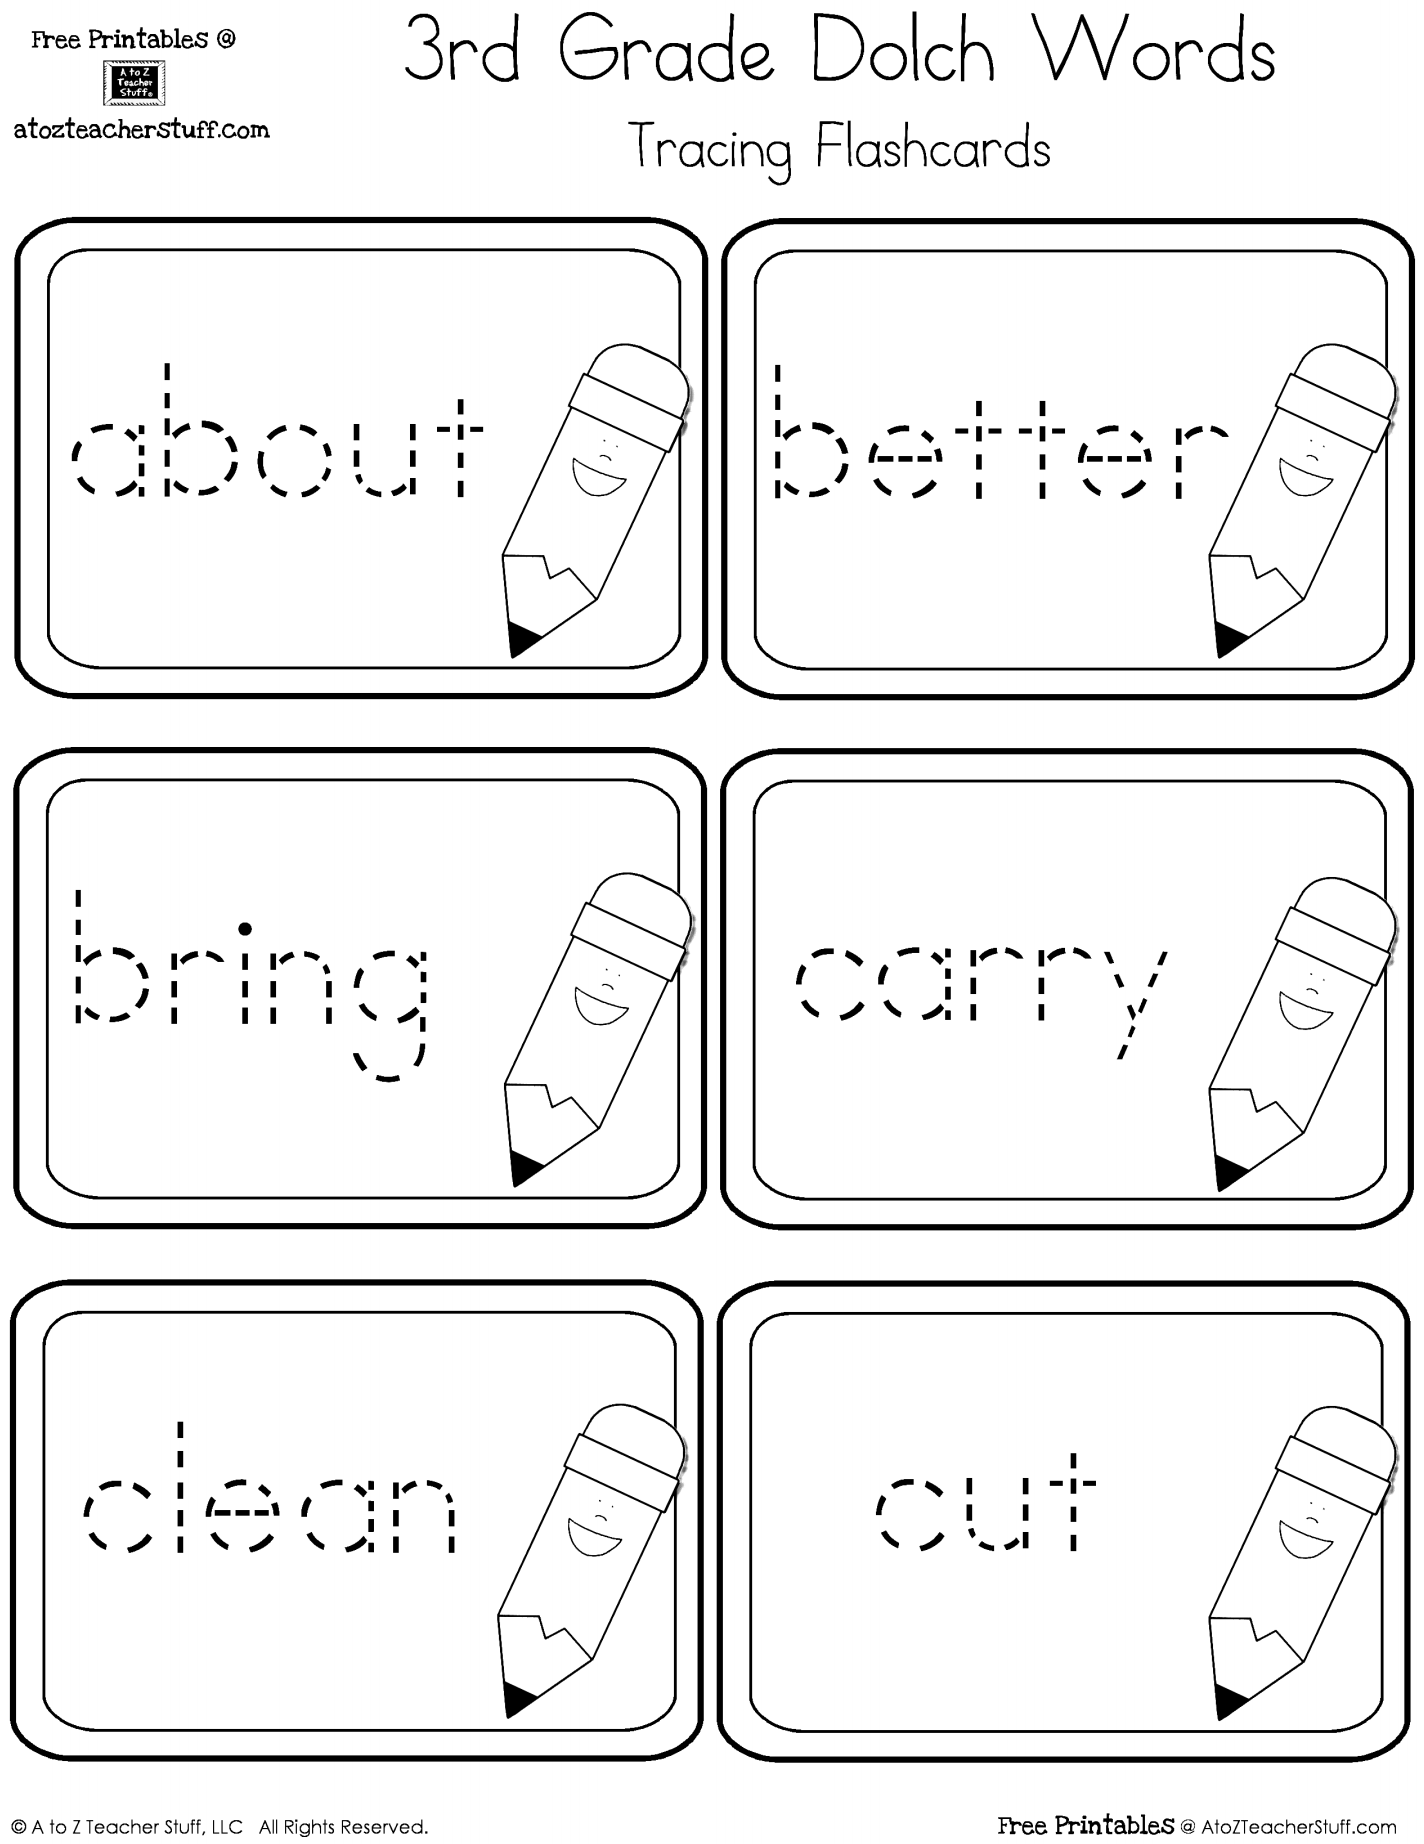 Worksheets First Grade Sight Word Worksheets third grade dolch sight words tracing flashcards a to z teacher 3rd cards free printables